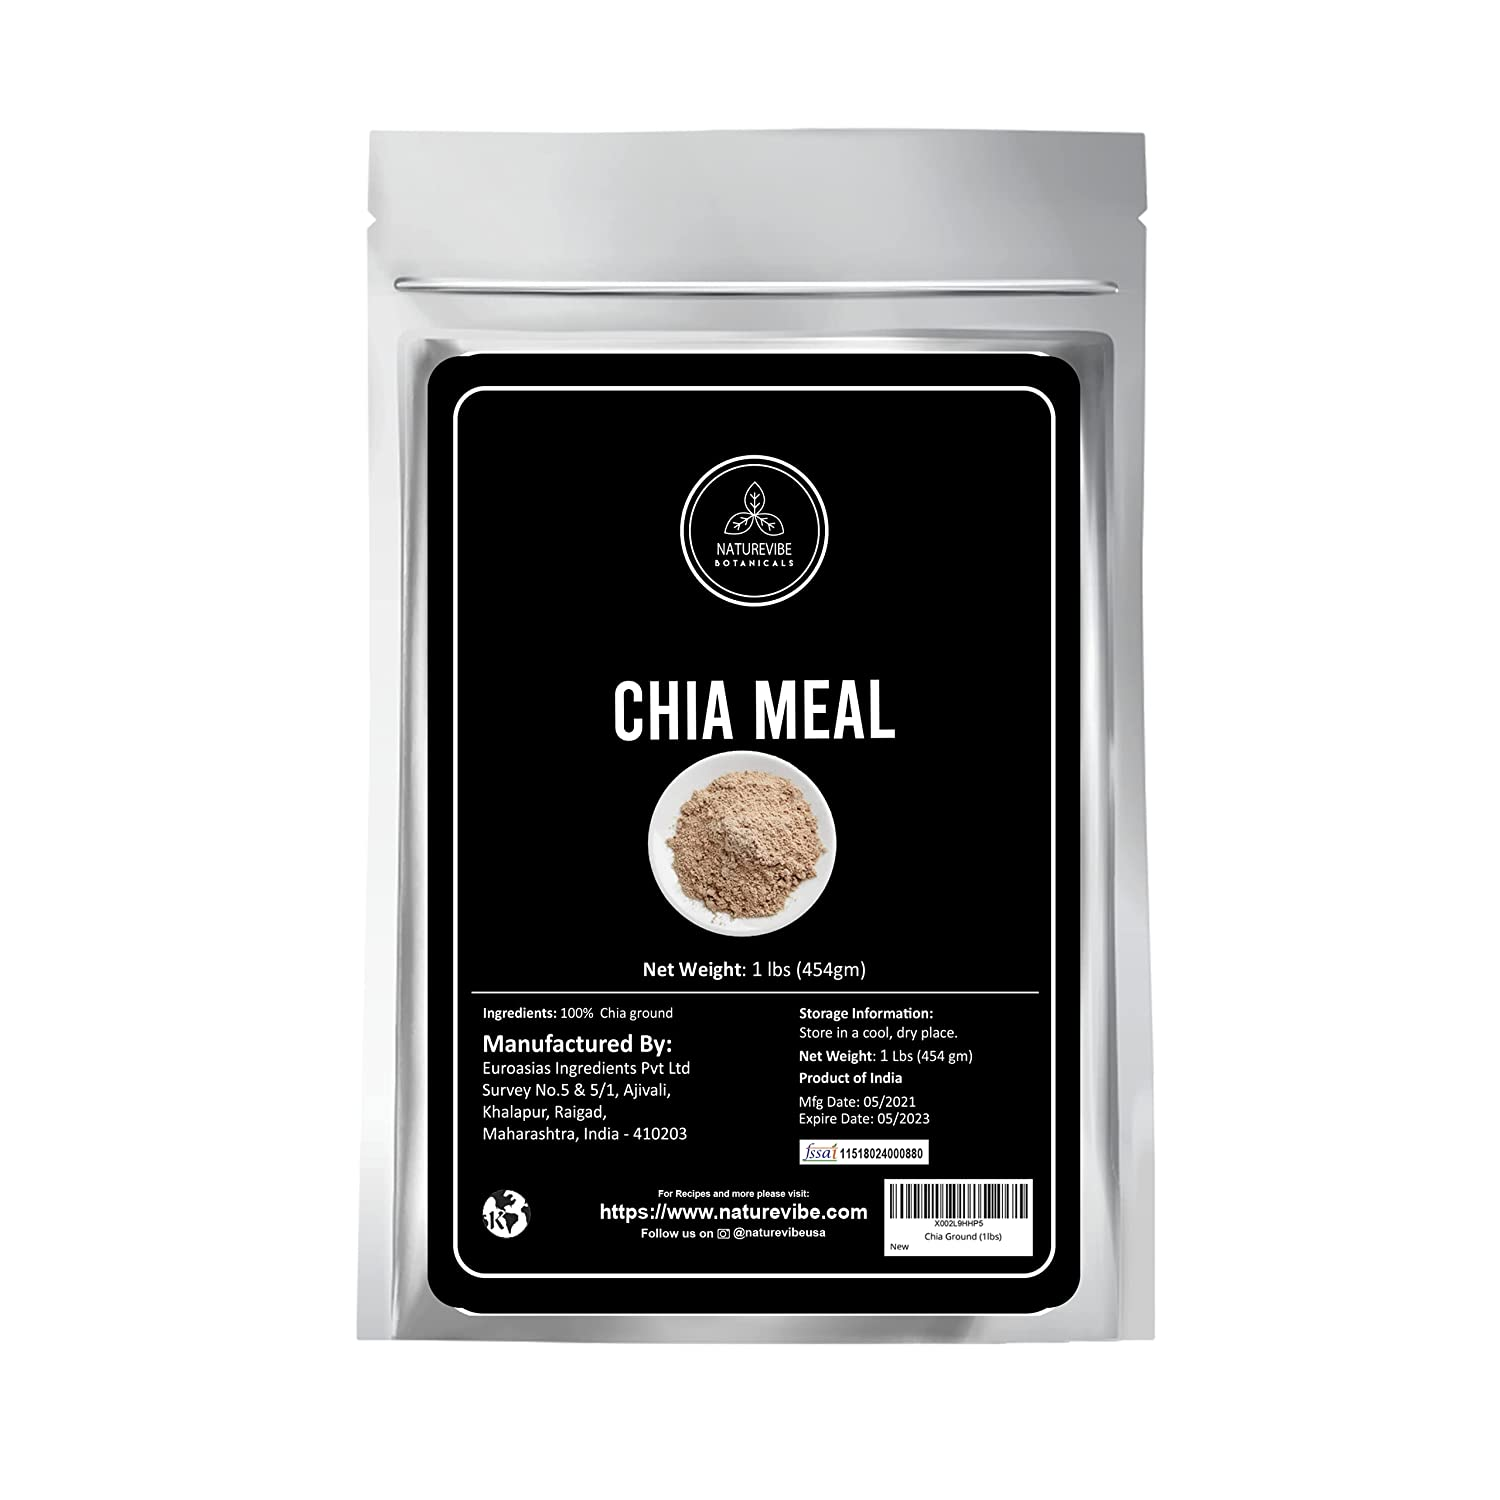 Naturevibe Botanicals Chia Meal Max 84% OFF Clearance SALE Limited time Ground Fr 1lb Seeds Keto